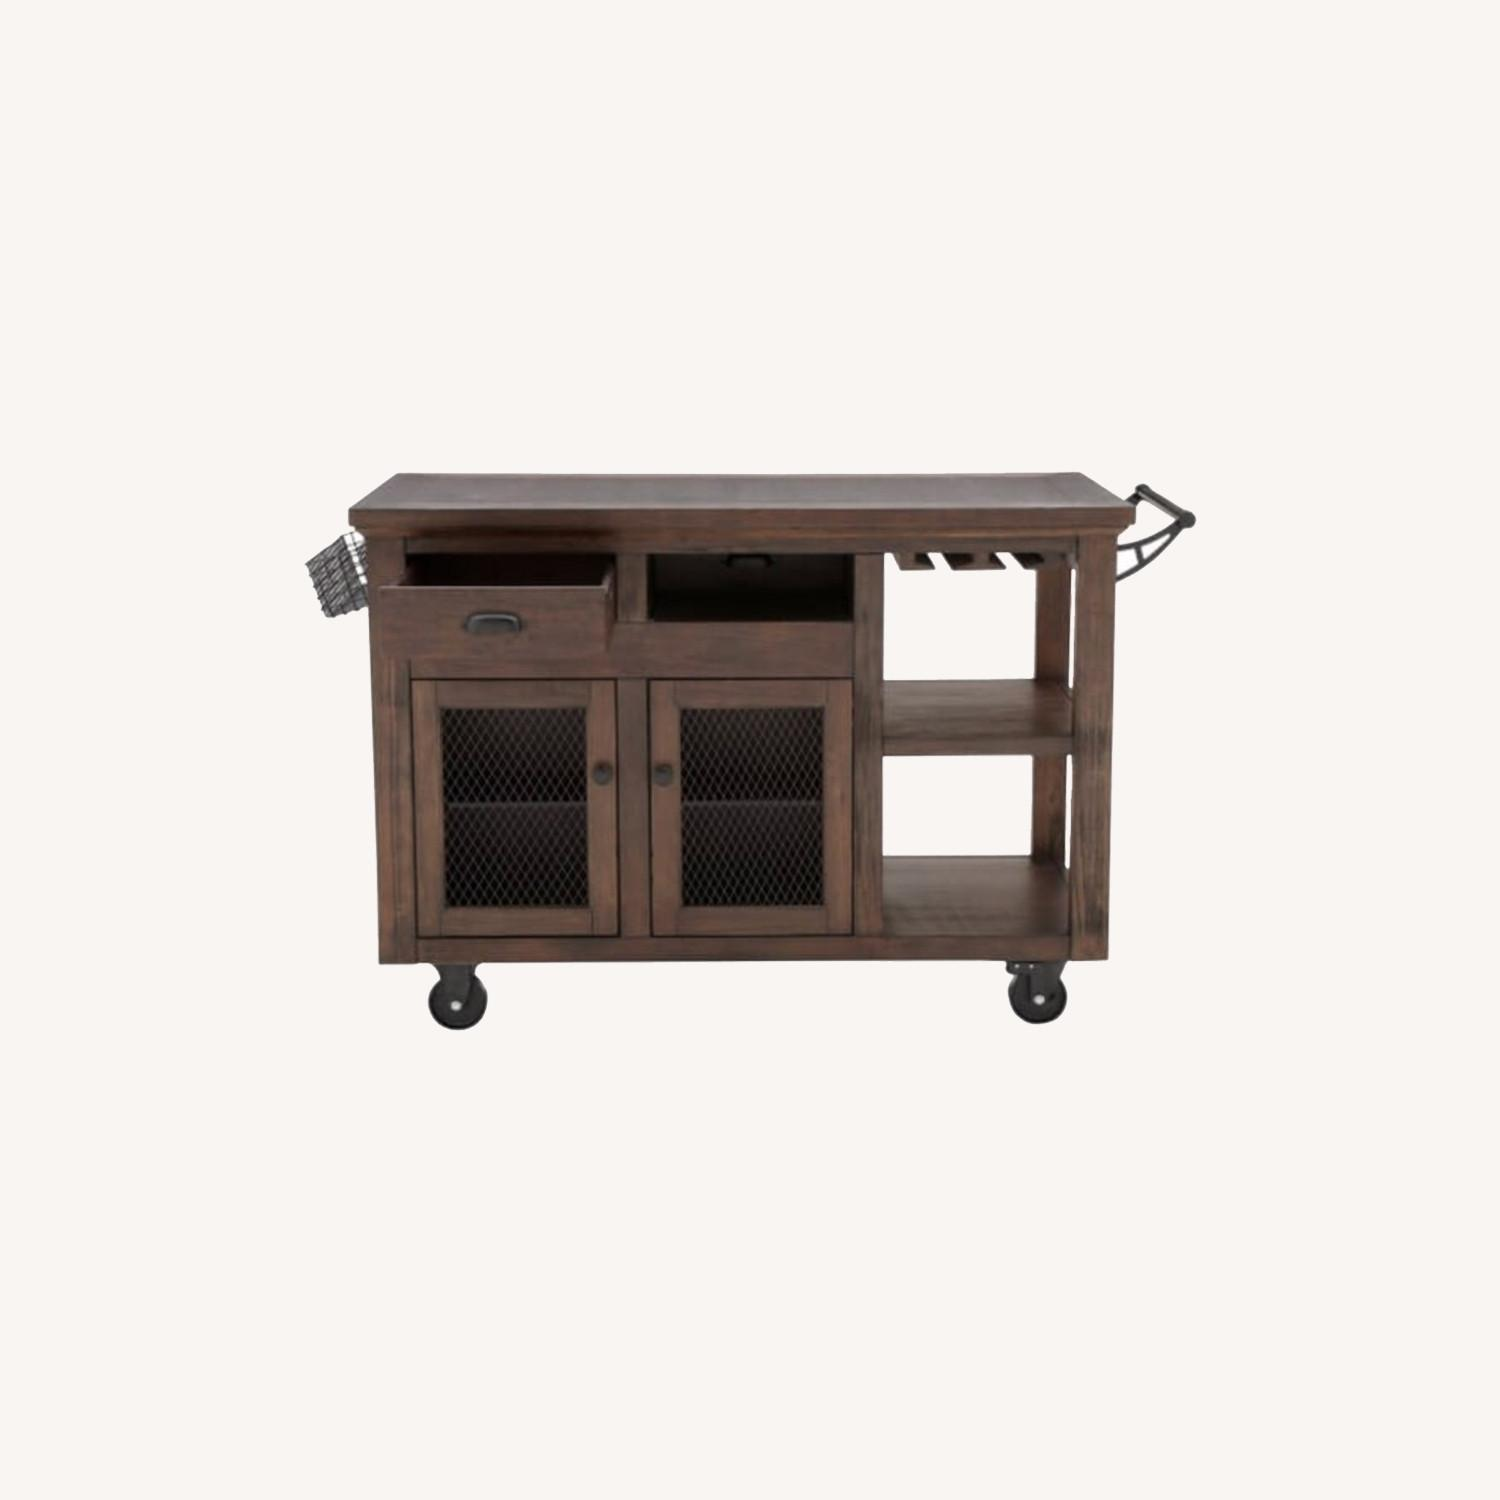 Cooper Rustic Walnut Kitchen Cart with Storage - image-0